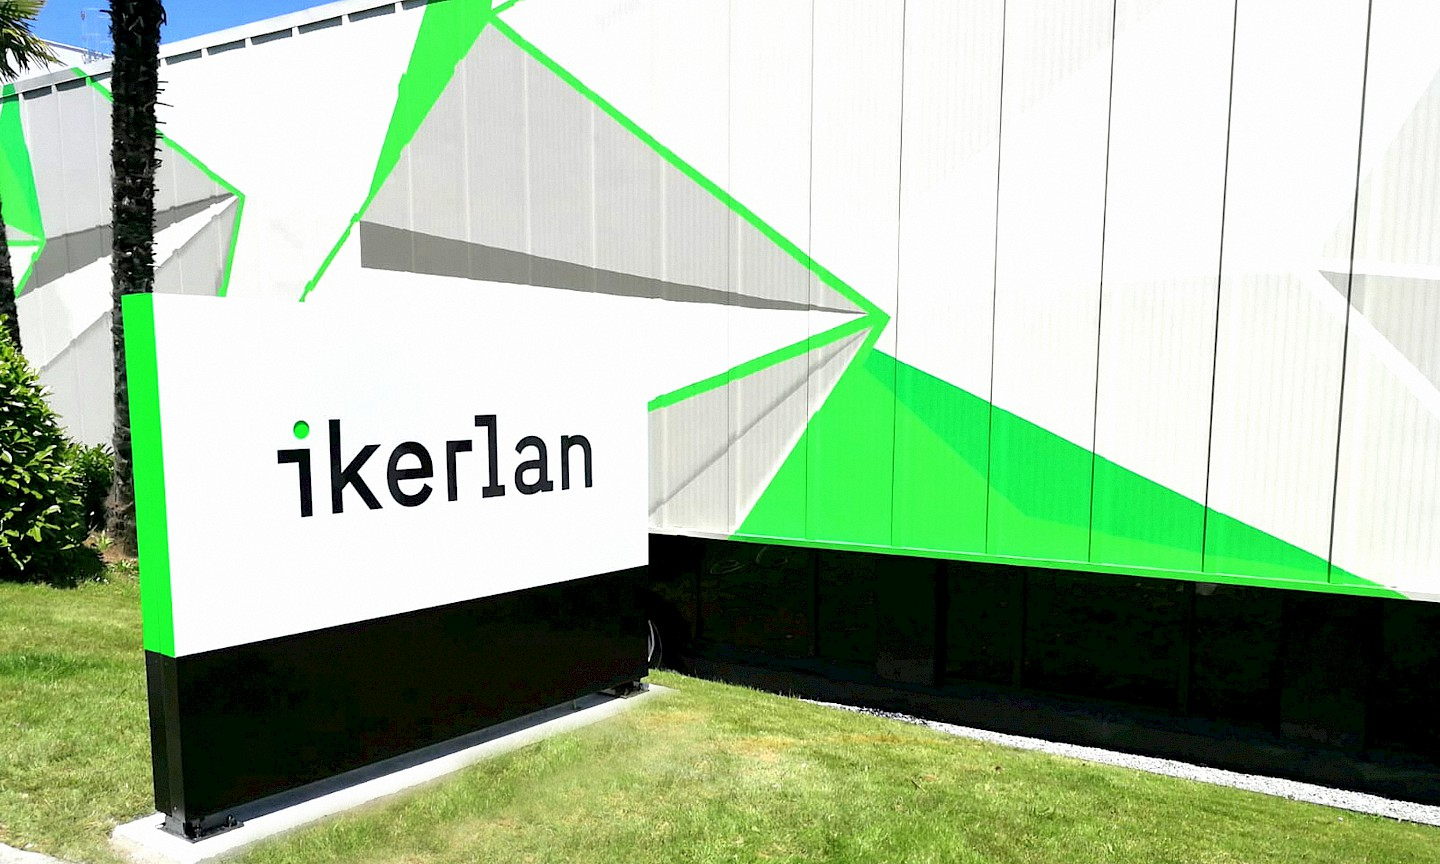 branding environment_16 design ikerlan technology move